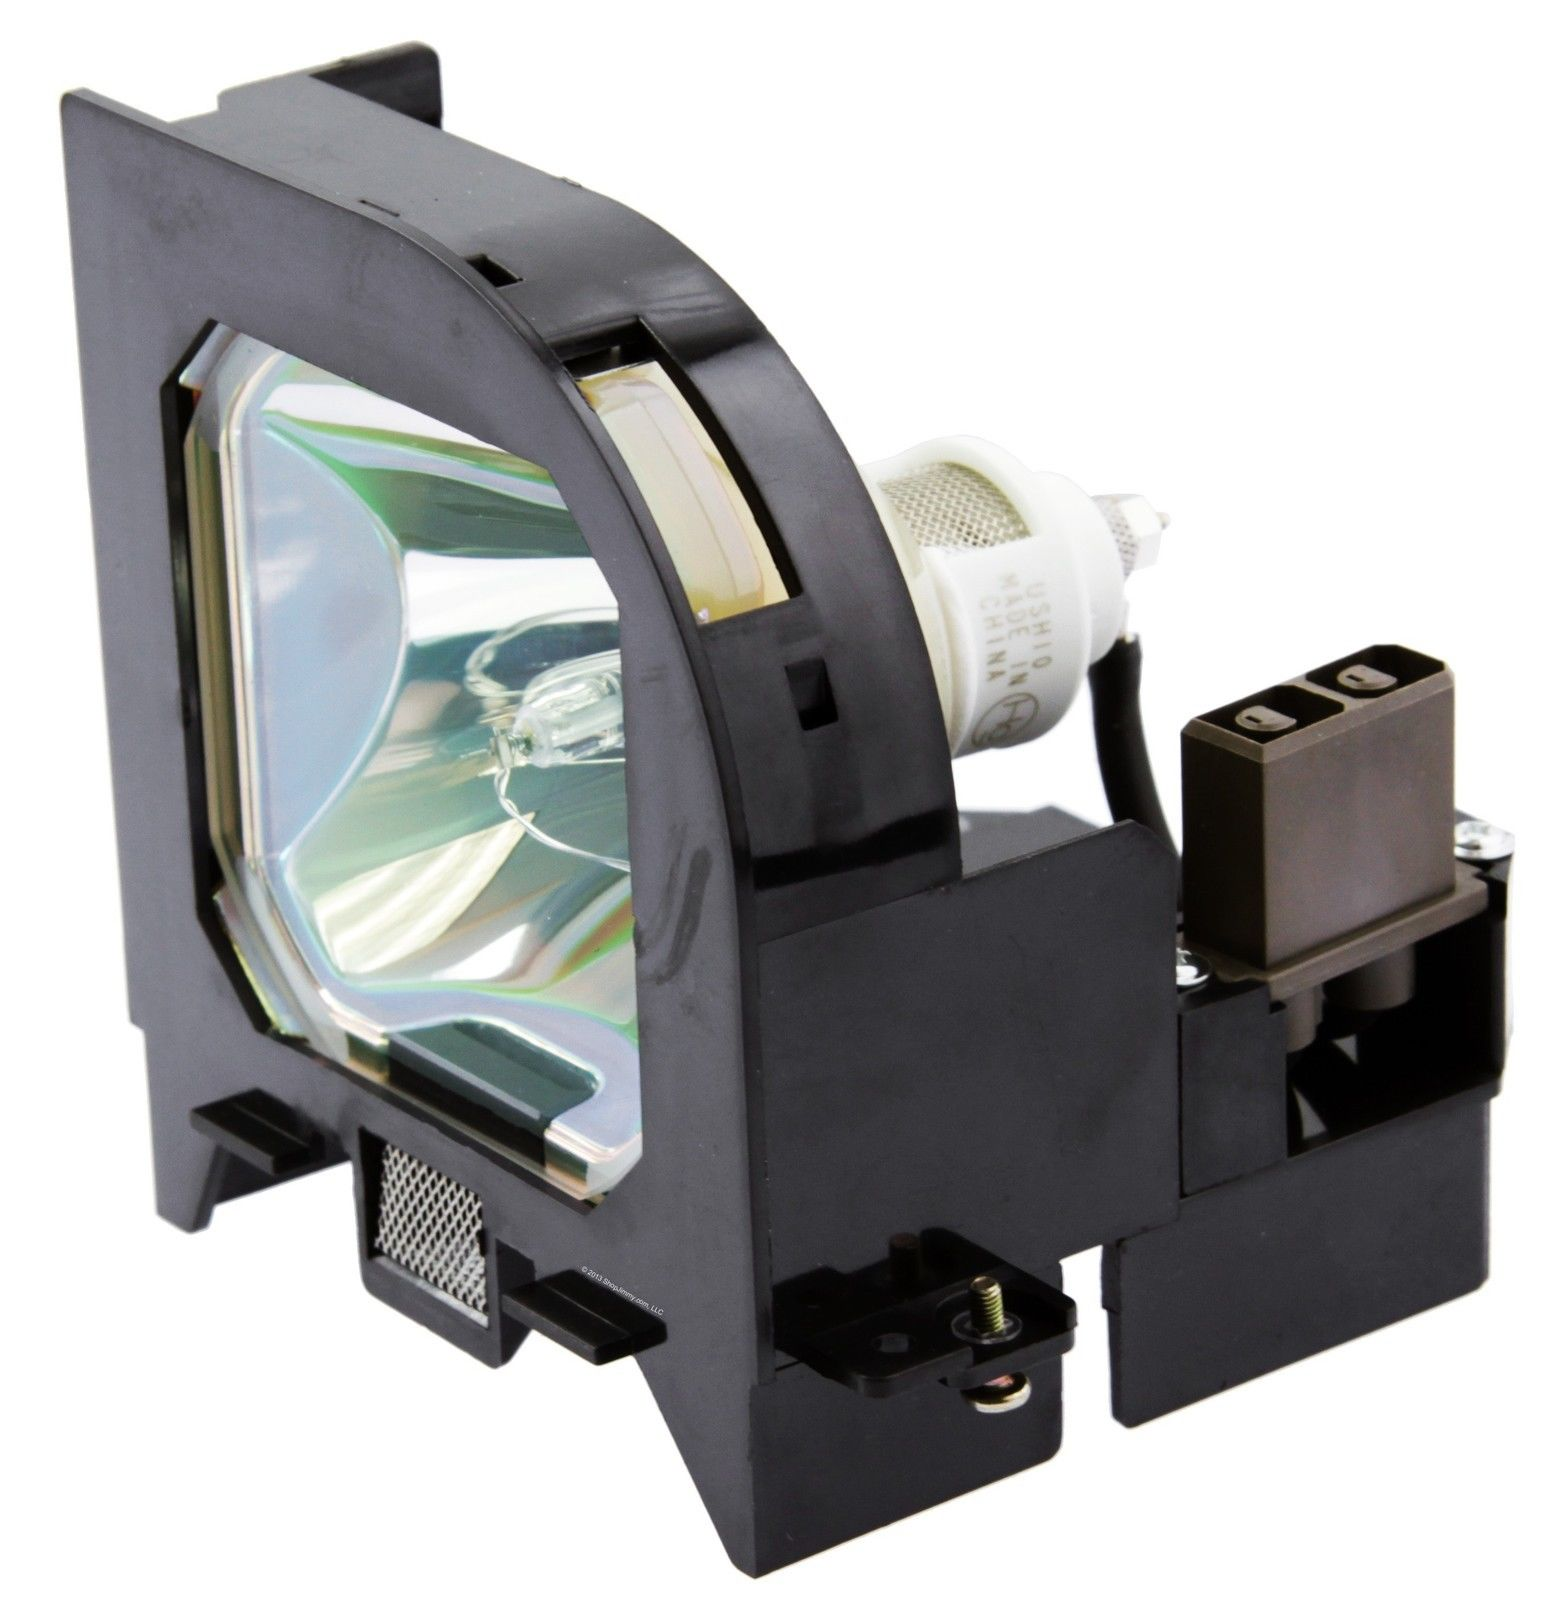 LMP-F300 LMPF300 for Sony VPL-FX51 VPL-FX52 FX52 VPL-FX52L FX52L VPL-PX51 PX51 Projector Bulb Lamp with housing replacement projector lamp bulb lmp f300 for sony vpl fx51 vpl fx52 vpl fx52l vpl px51 projectors